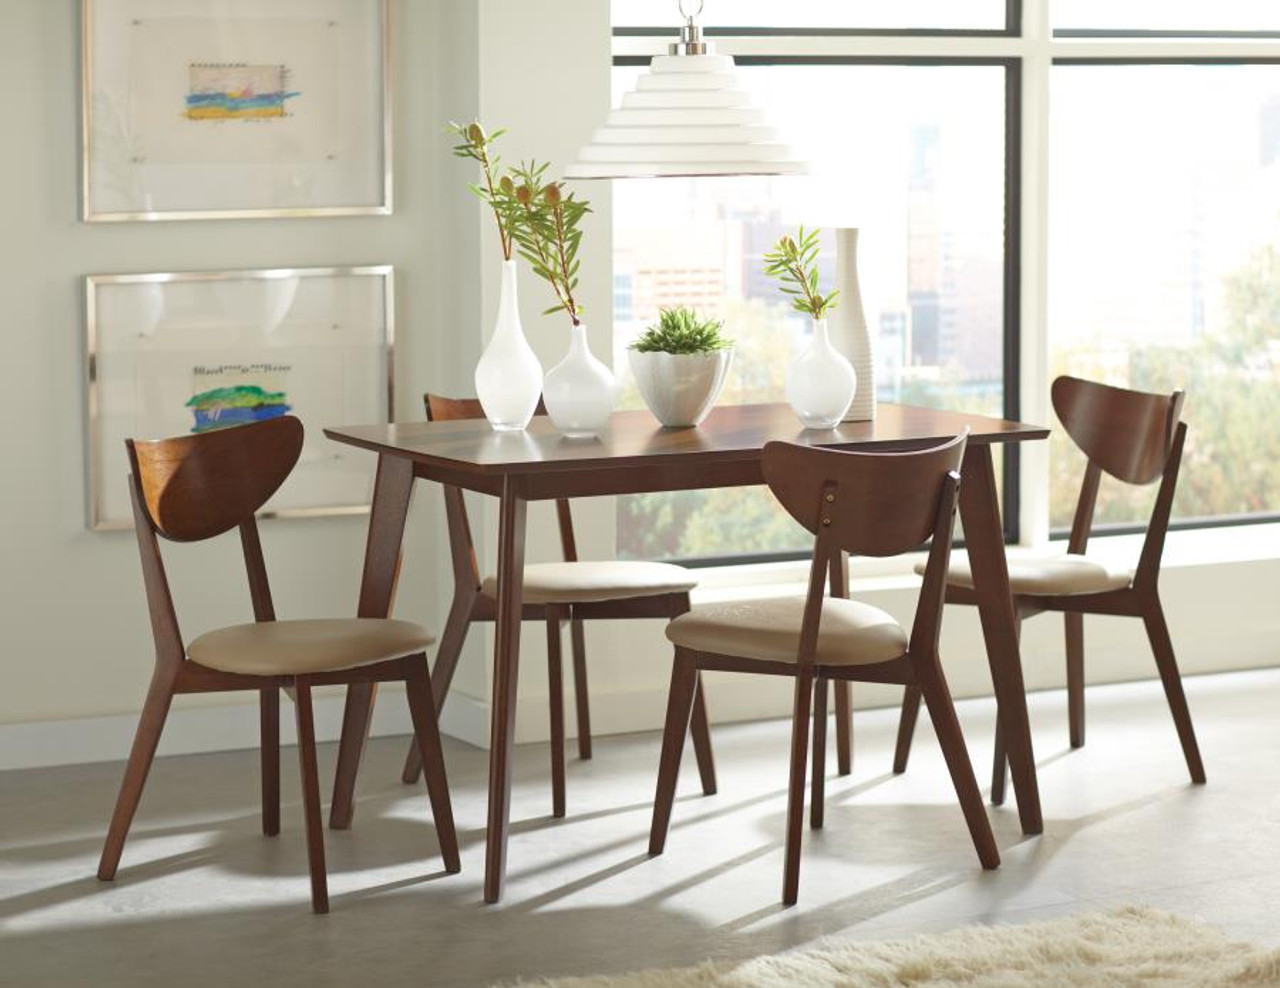 The Kersey Retro Chestnut Dining Table sold at Discount Home ...